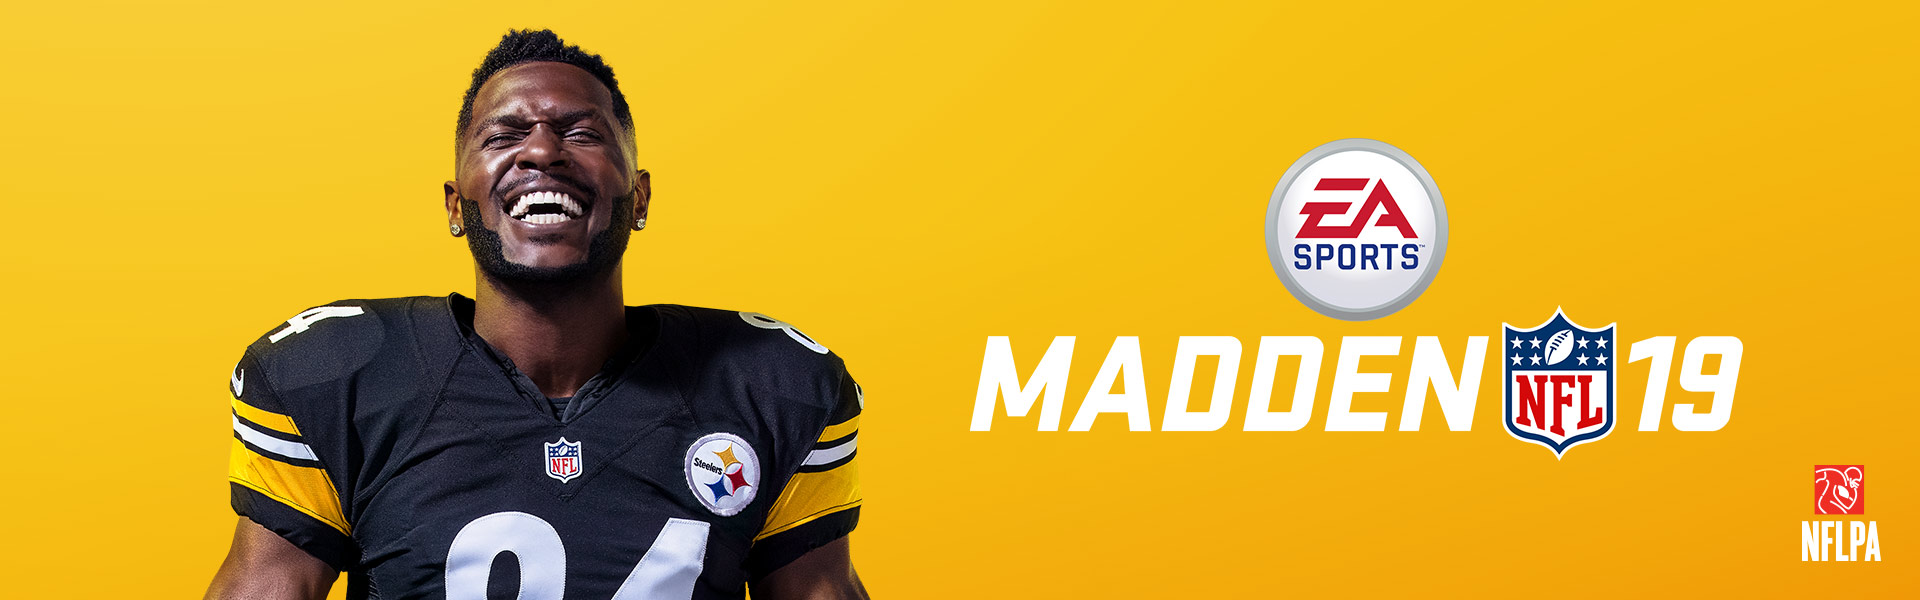 EA Sports Madden NFL 19, En stolt Antonio Brown smiler